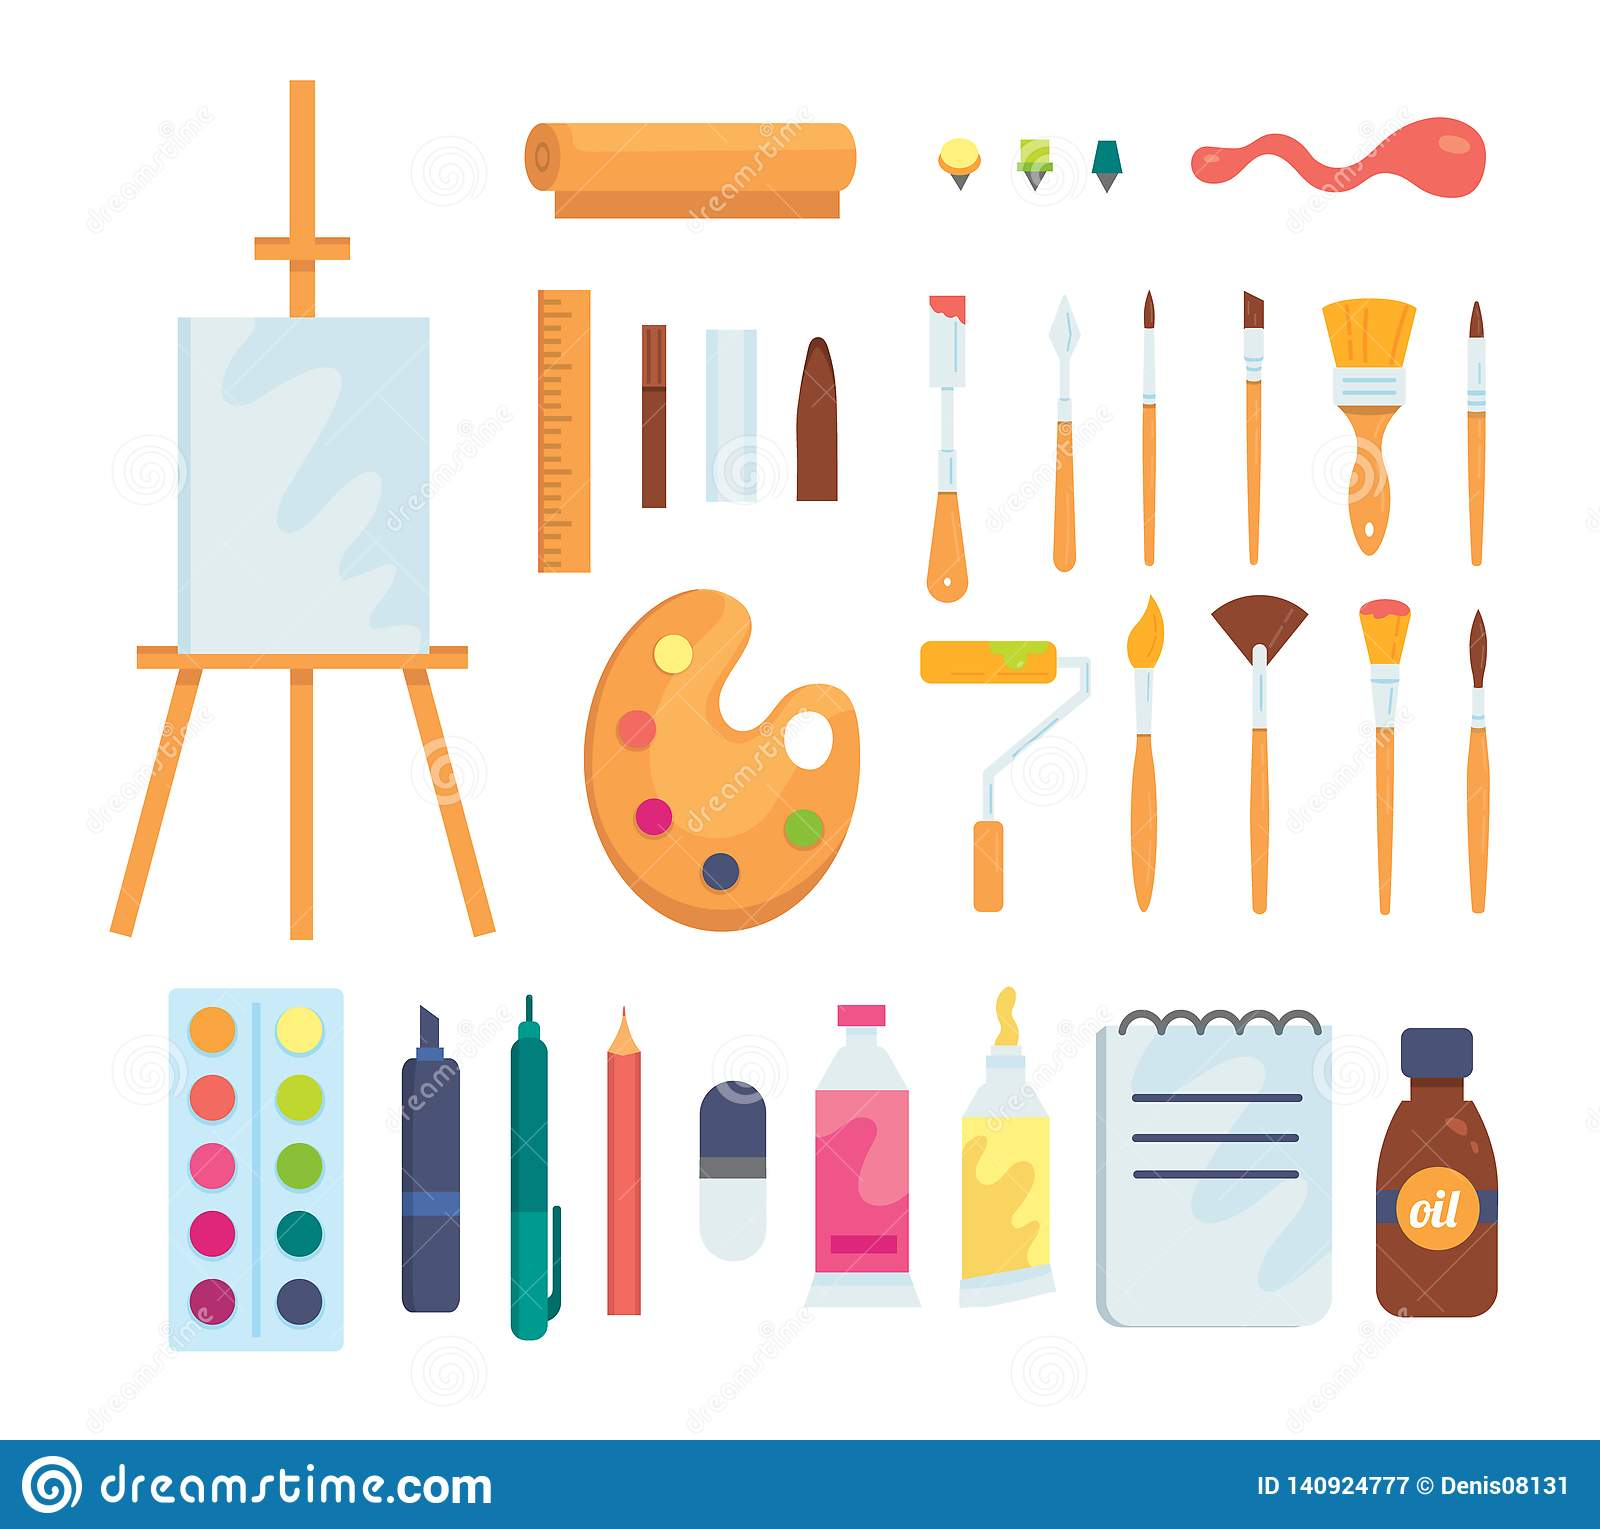 Set of colored painting tools vector icons in cartoon style. Supplies, art brushes and easel. Artist or school